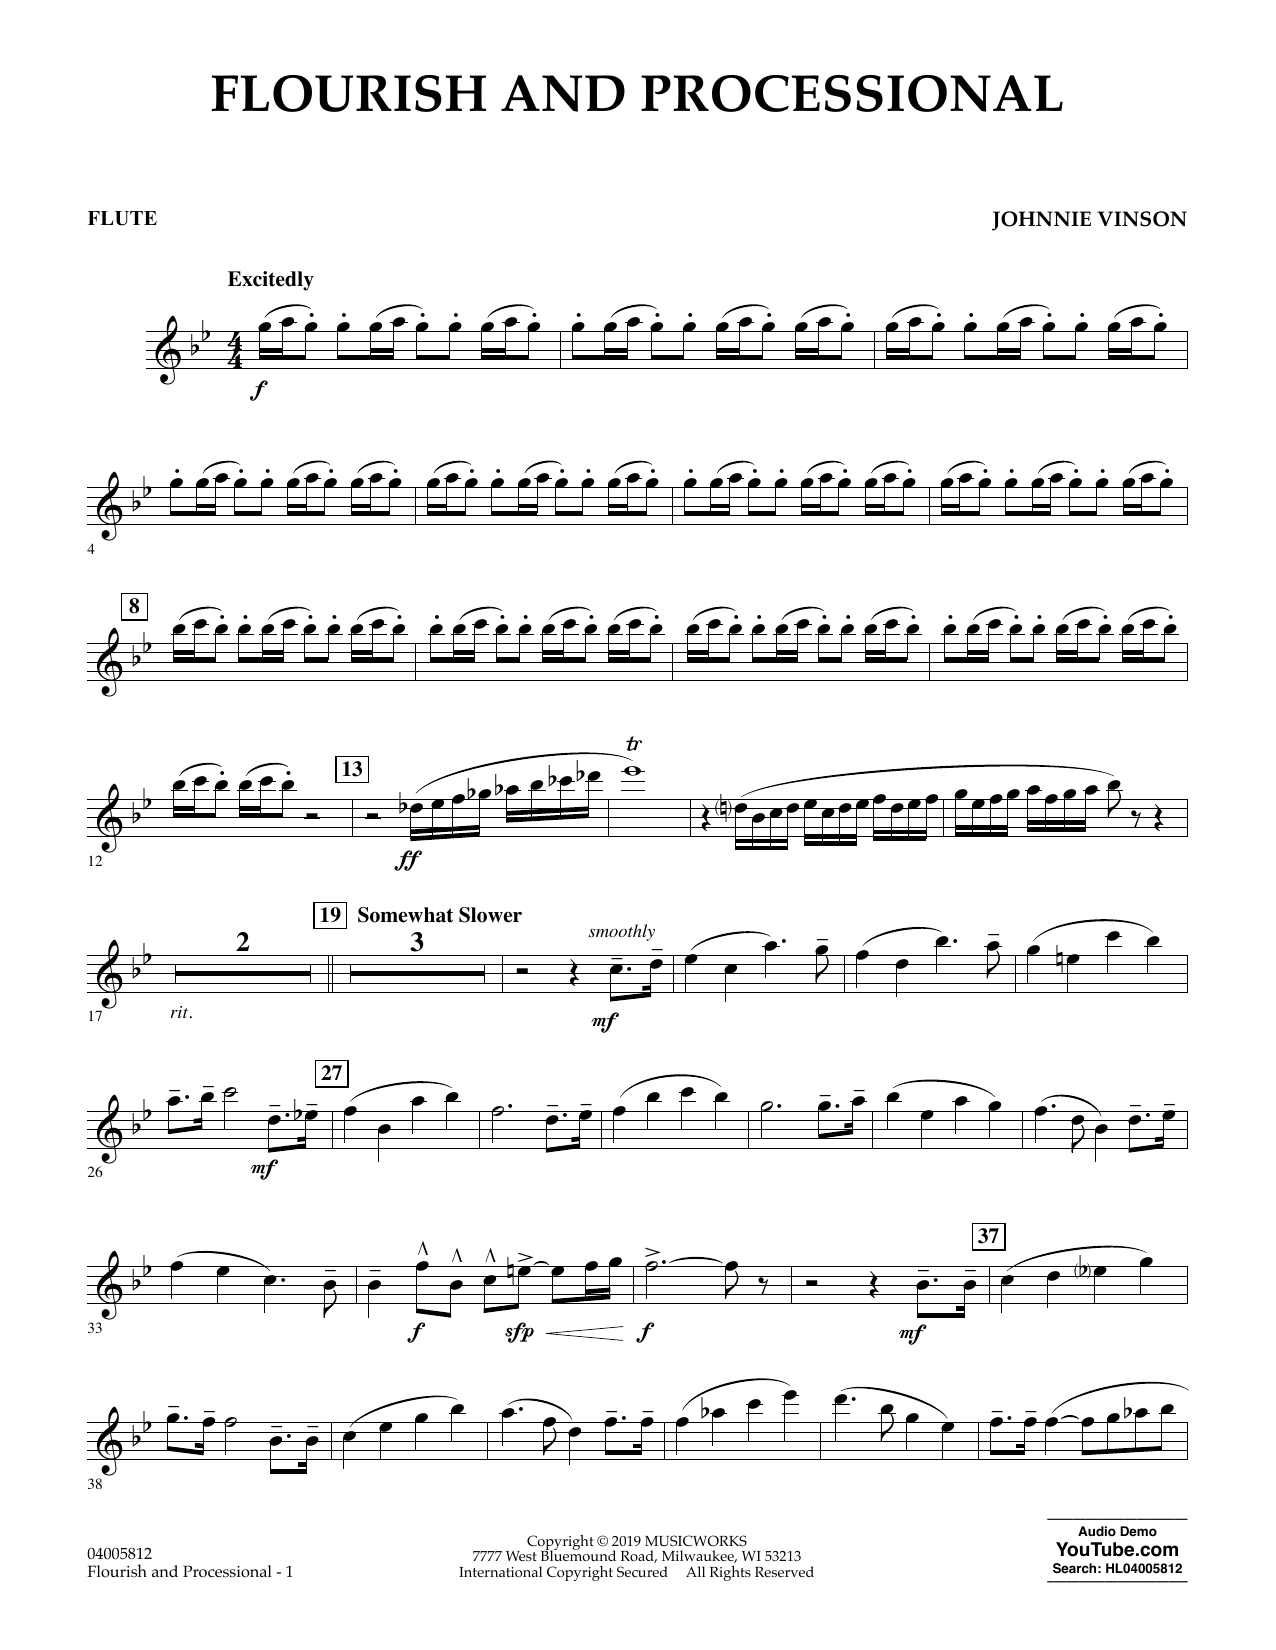 Johnnie Vinson Flourish and Processional - Flute sheet music preview music notes and score for Concert Band including 2 page(s)